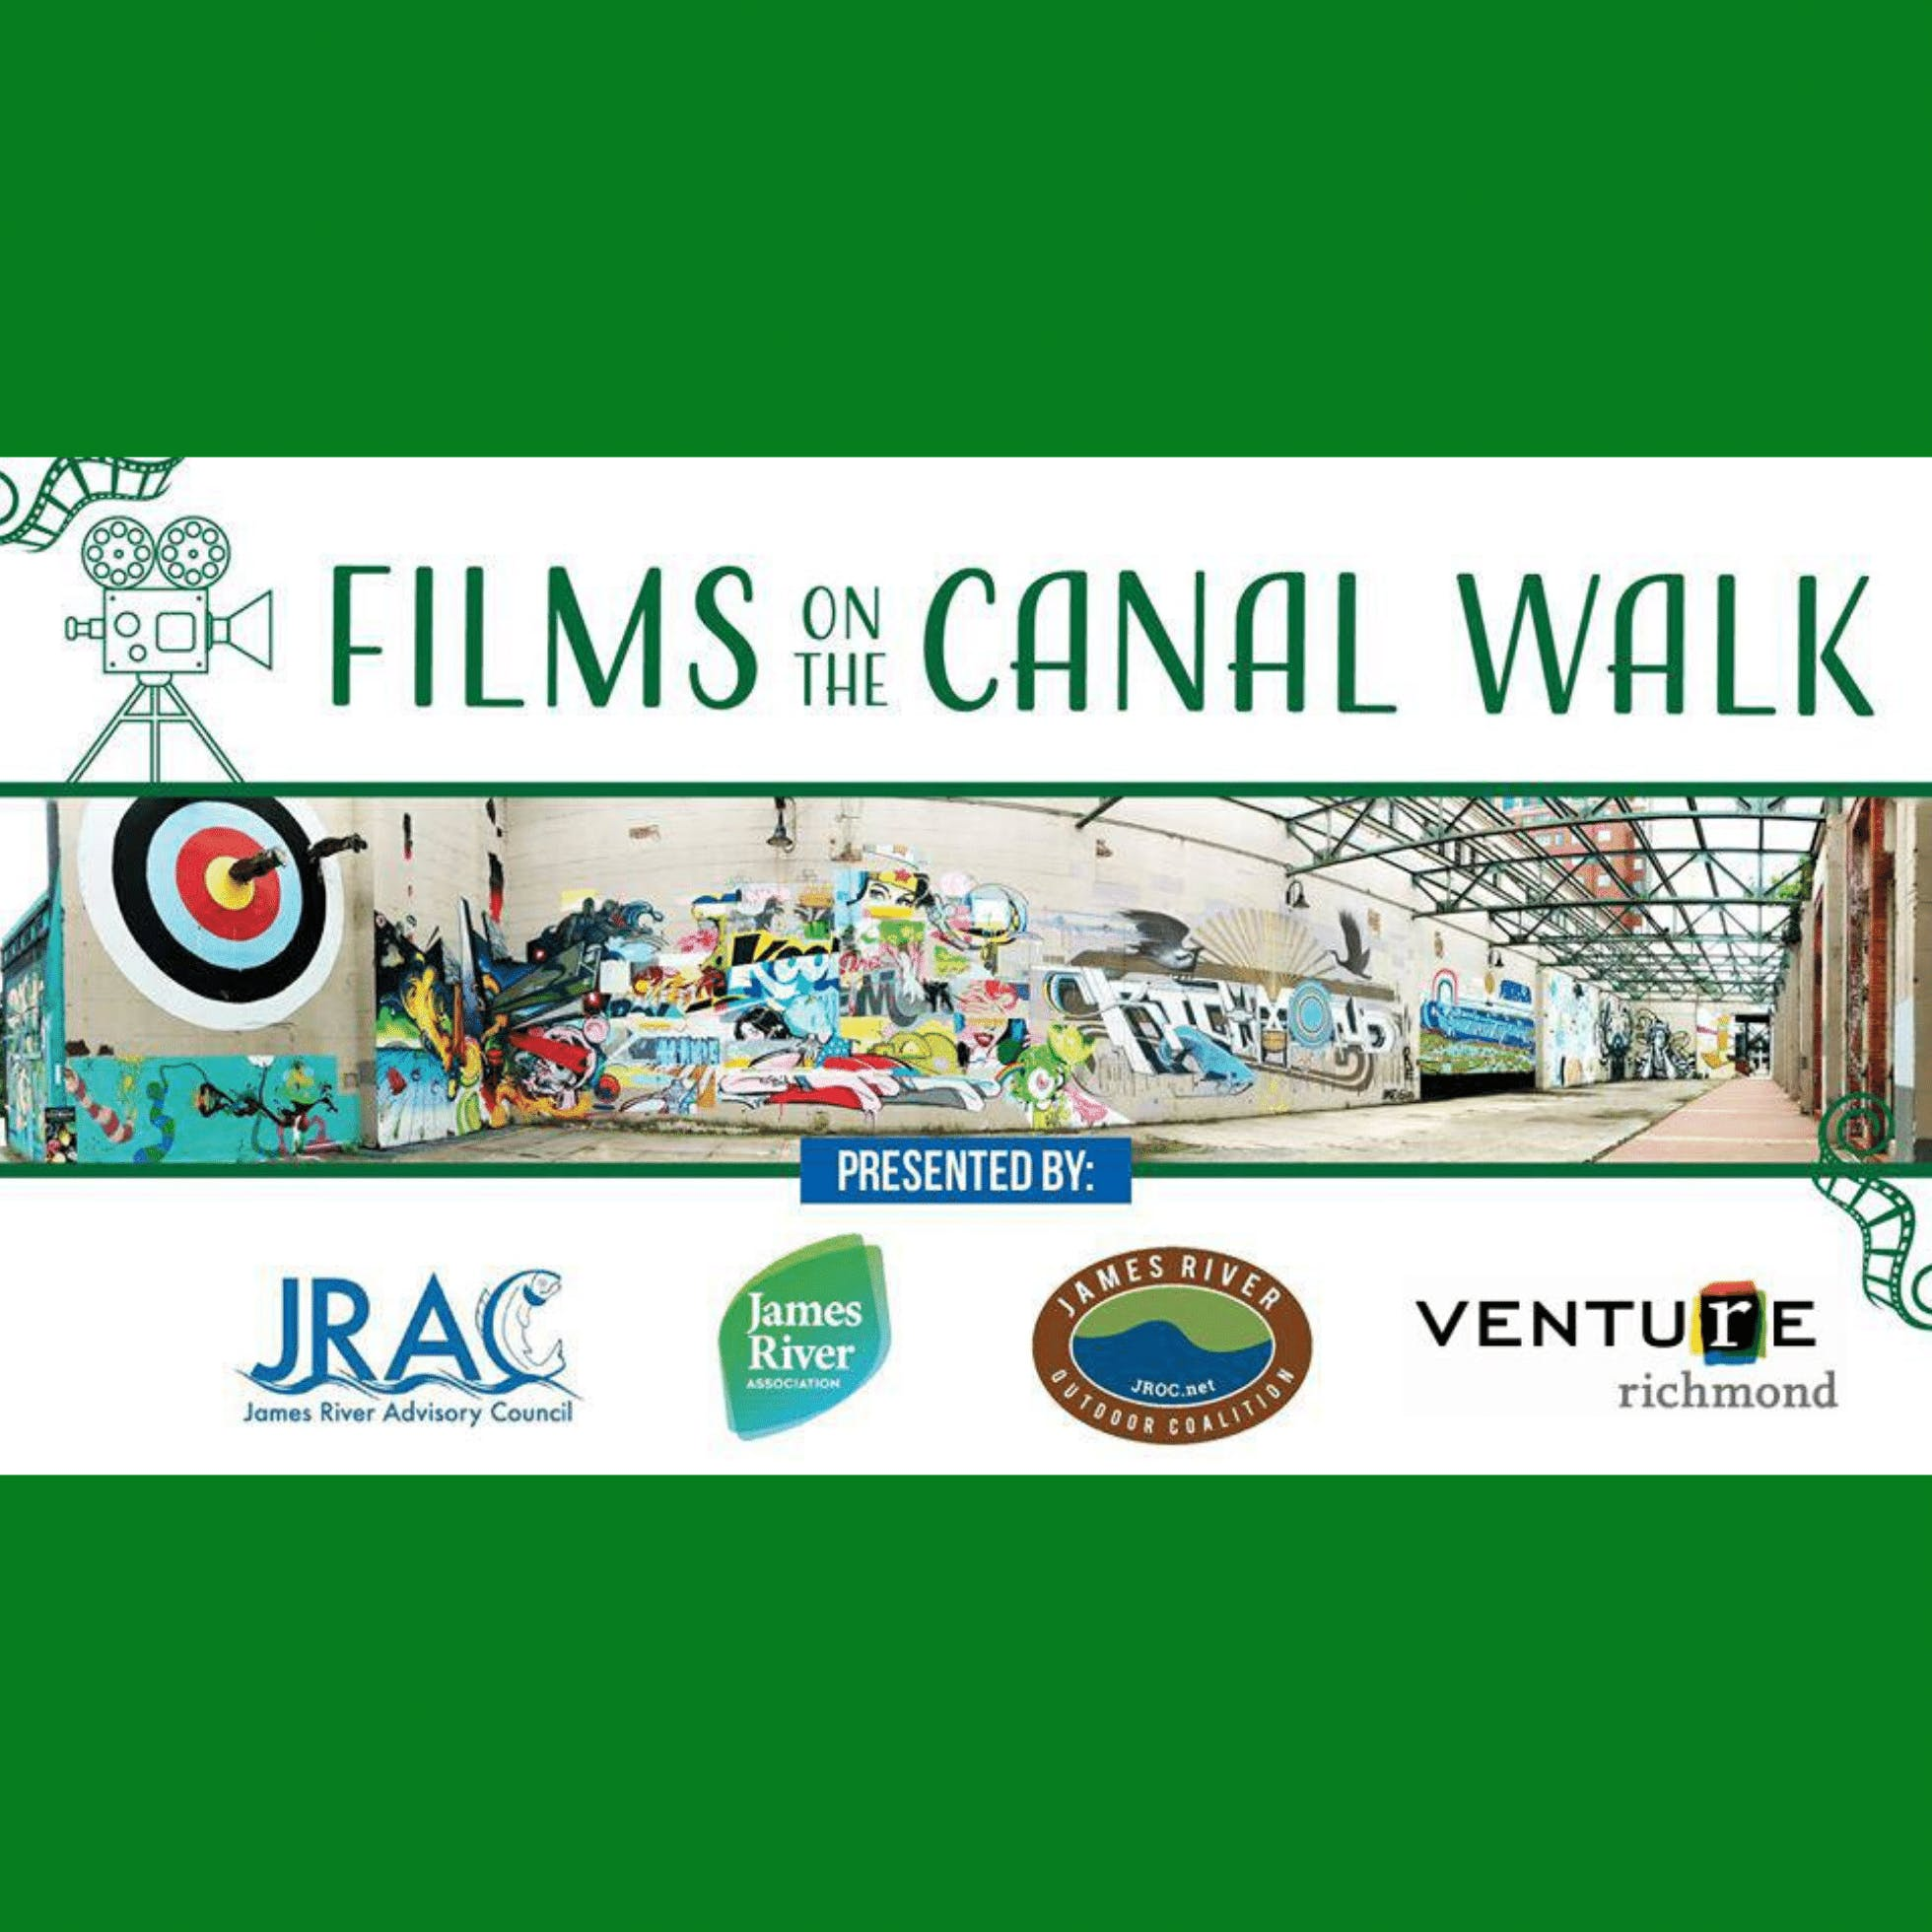 Films on the Canal Walk Film Submission Deadline